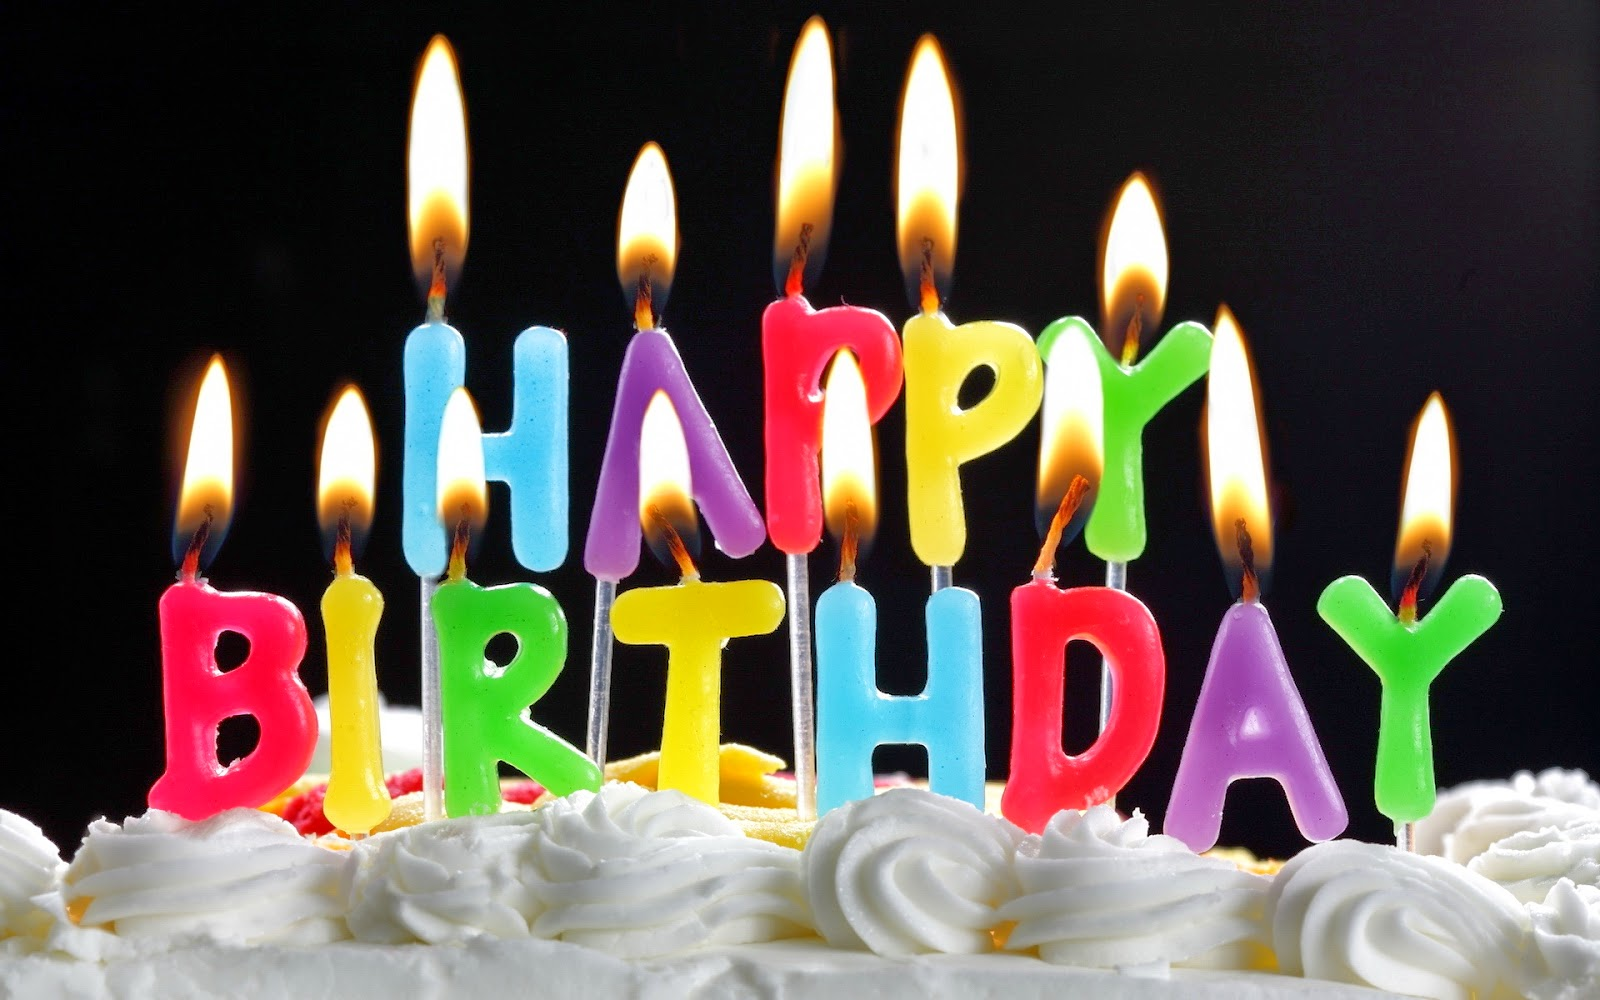 happy birthday wishes with lettered candles